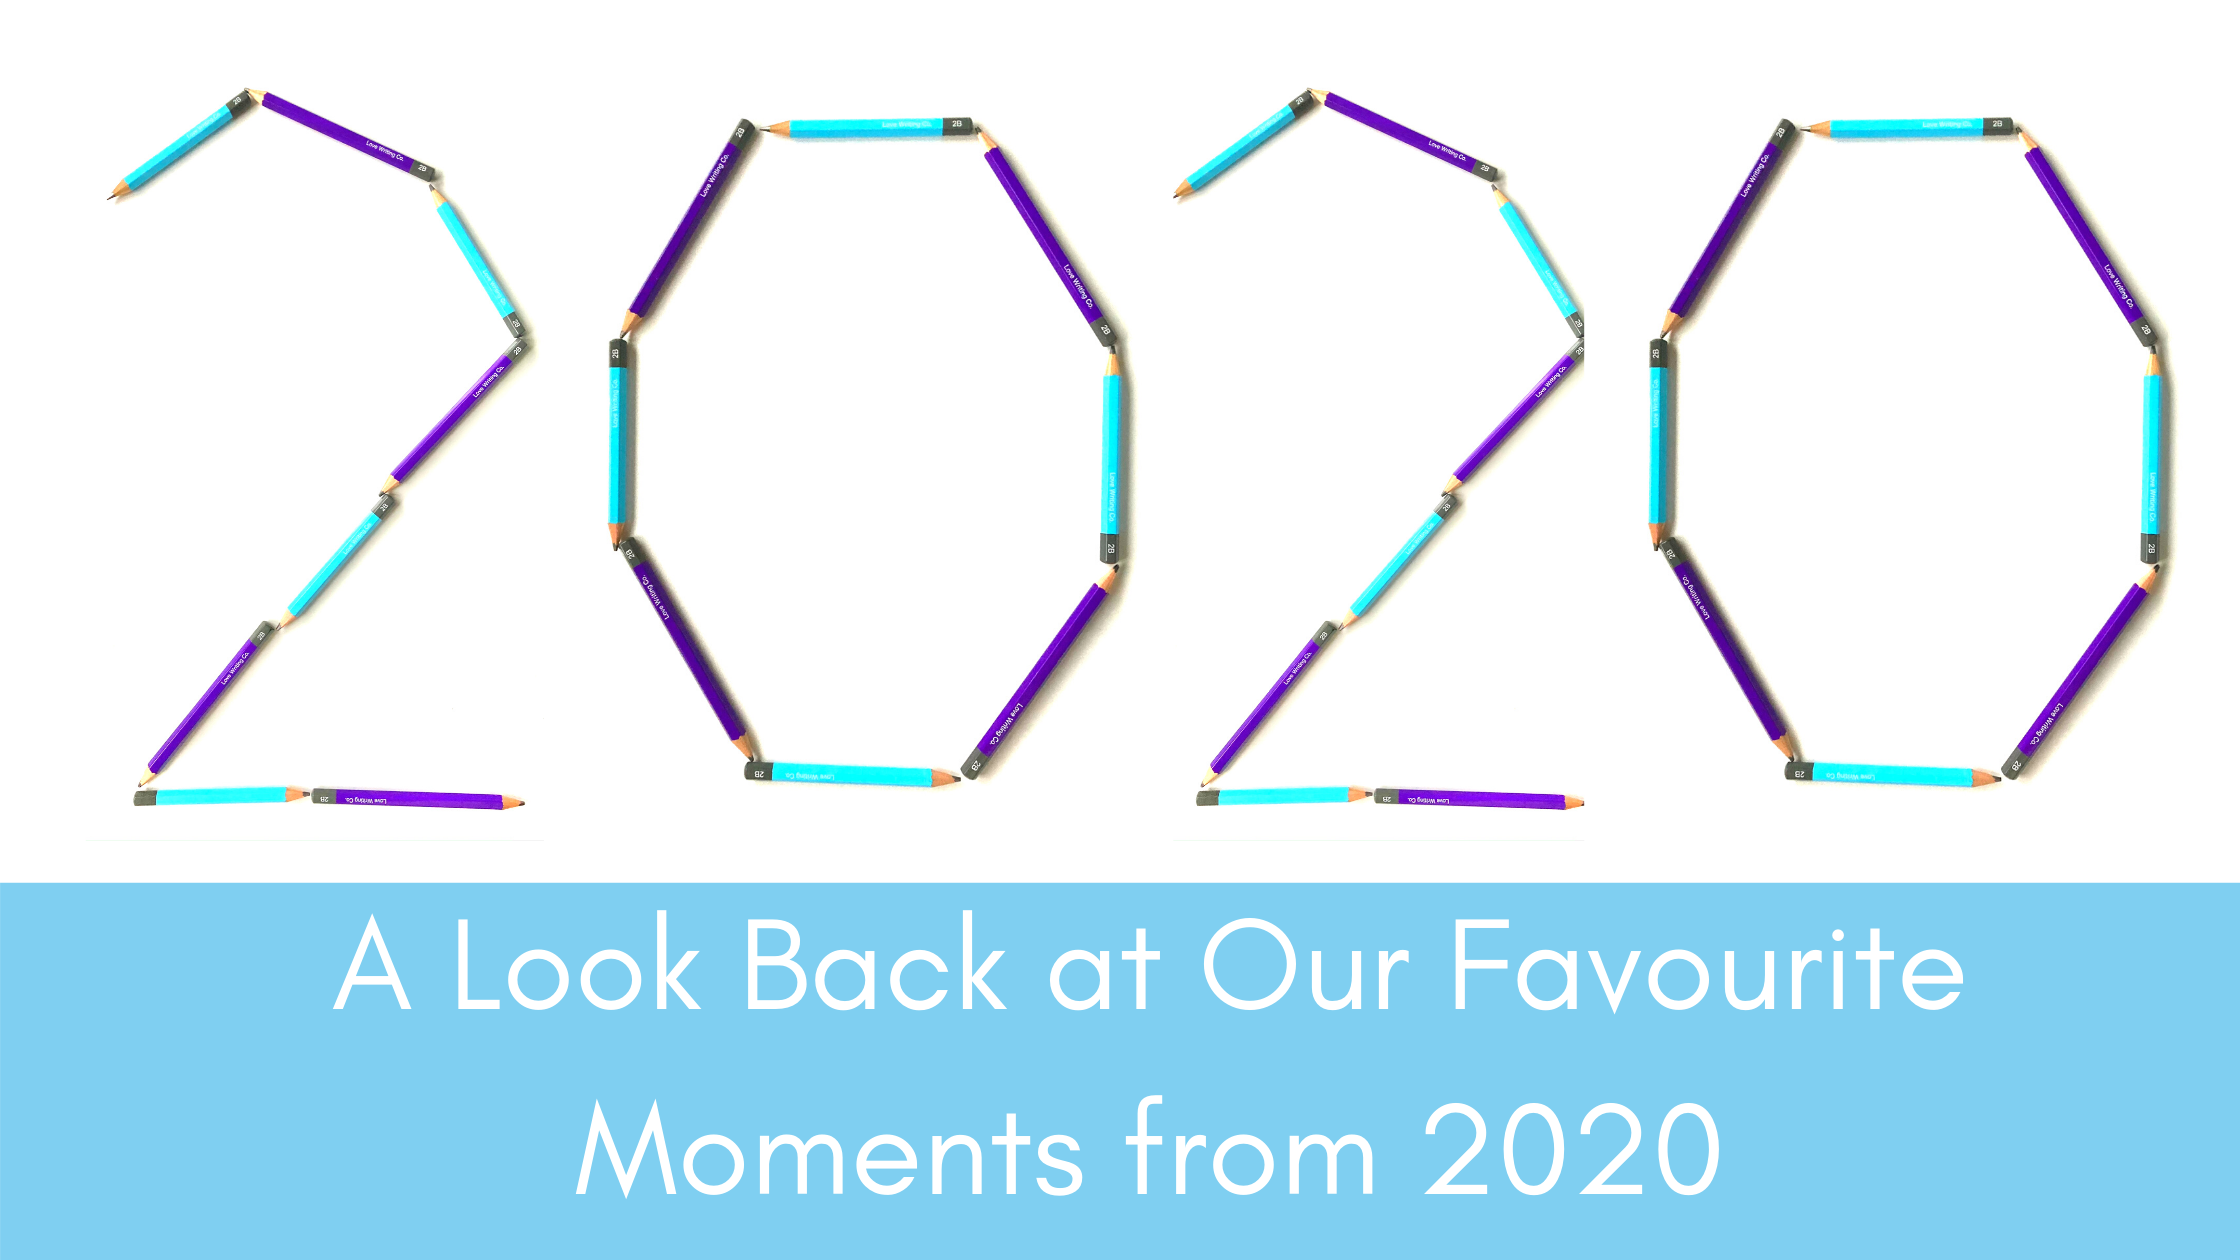 A Look Back at Our Favourite Moments from 2020